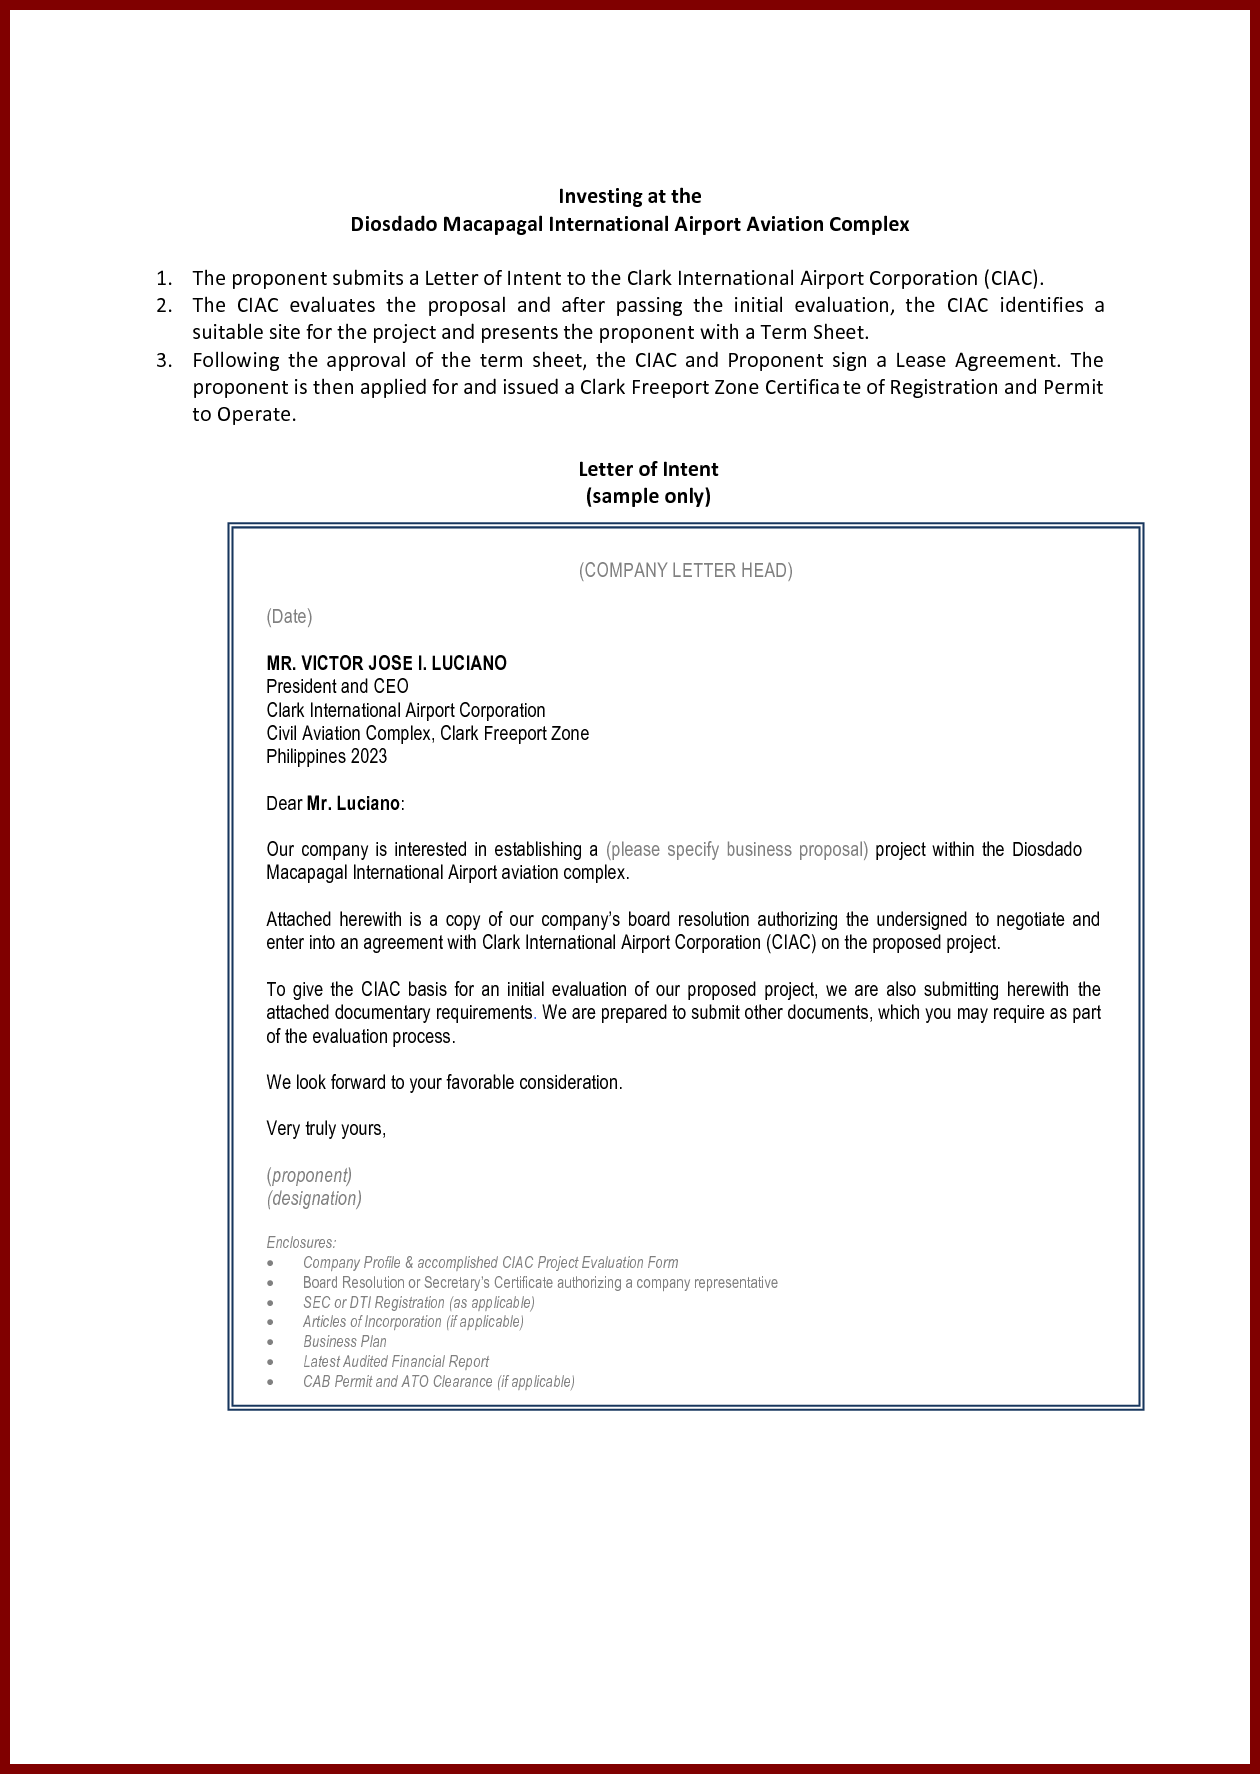 Canteen Proposal Letter Sample Sendlettersfo Business For Cake Store Mhz  Proposal Letter Outline